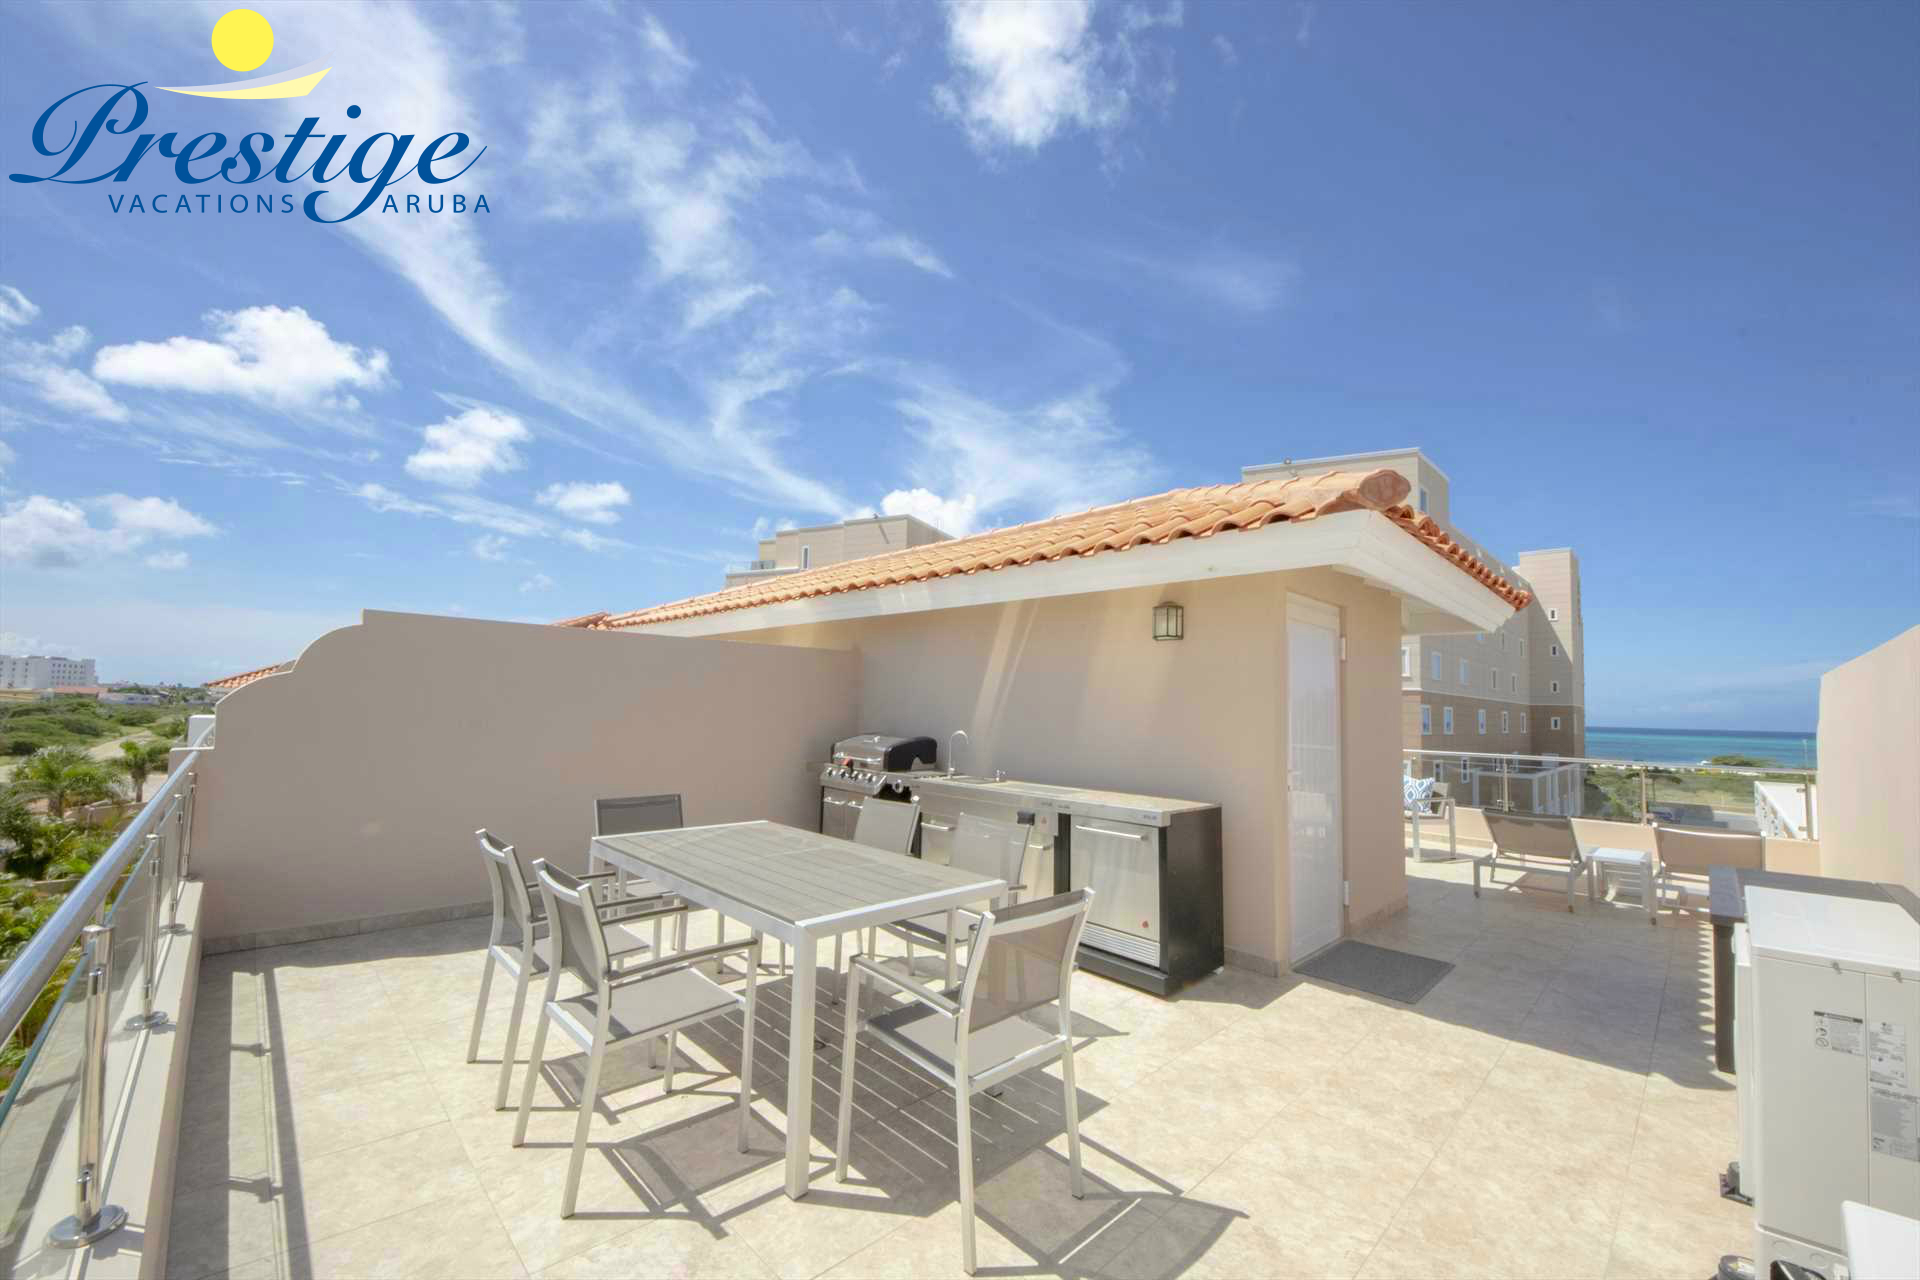 Your spacious private rooftop terrace with partial ocean view